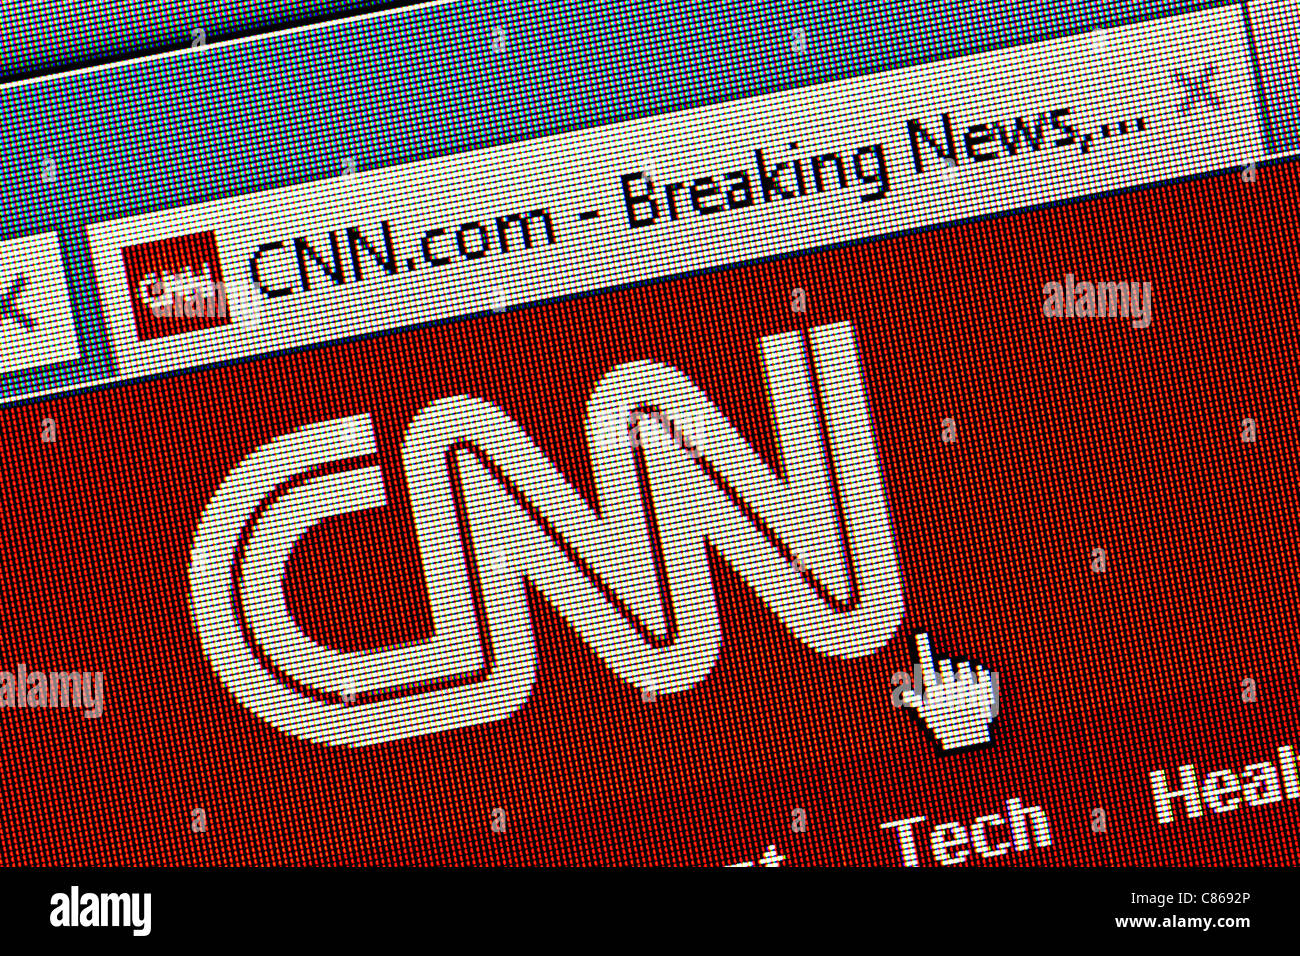 CNN logo and website close up - Stock Image